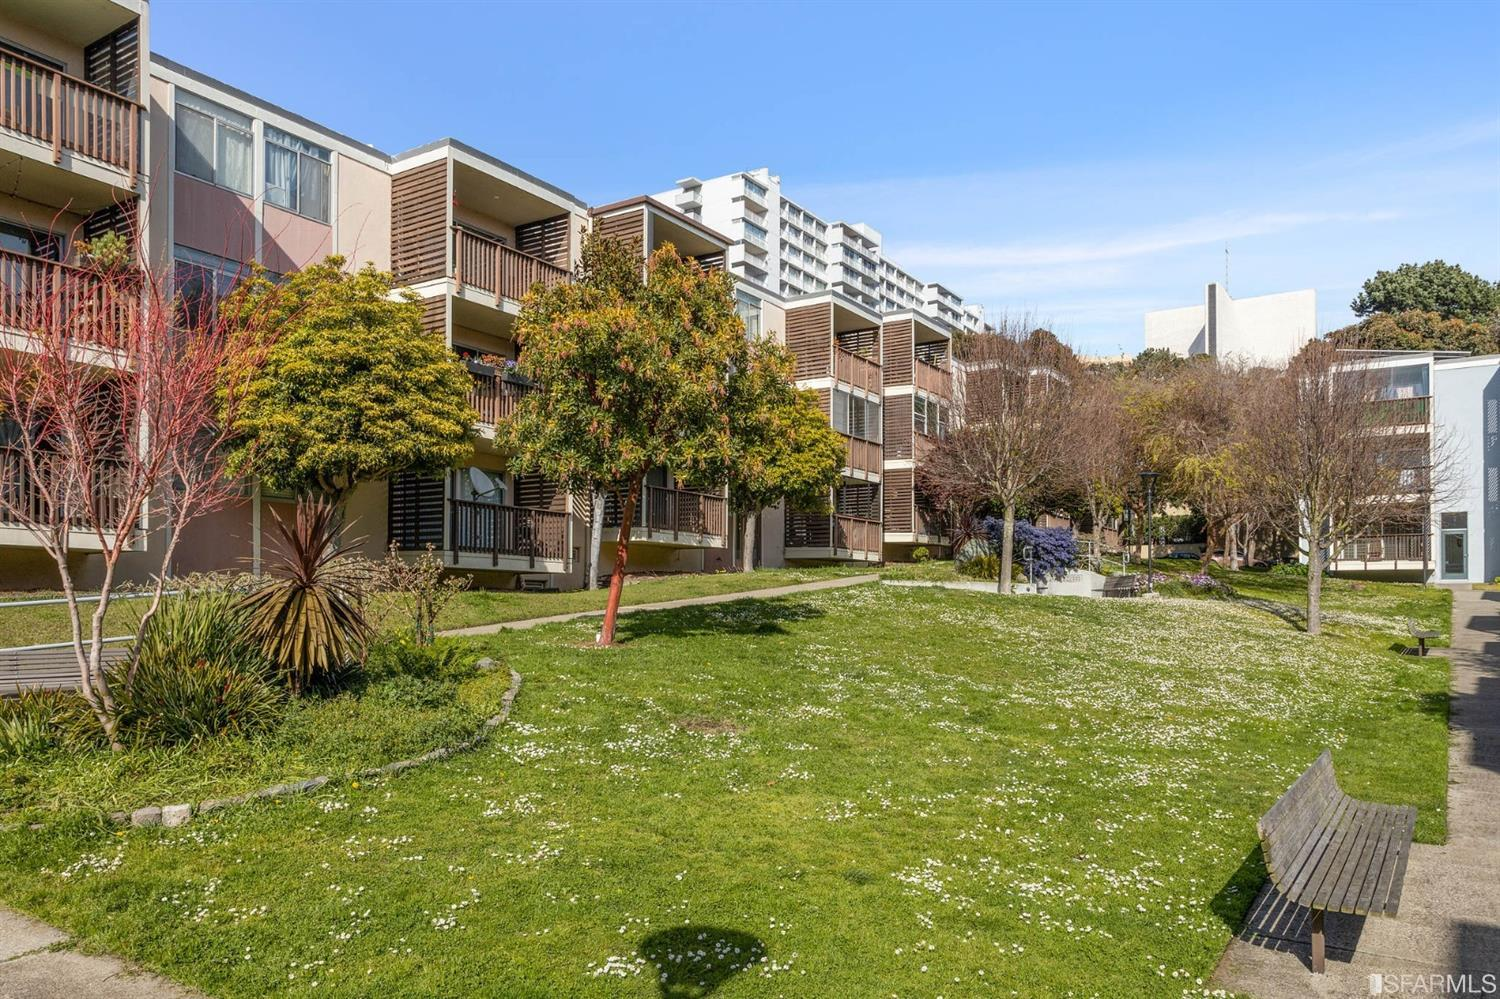 Listing 421526678 : 25  Galilee  1, San Francisco, CA, 94115  (photo 1)